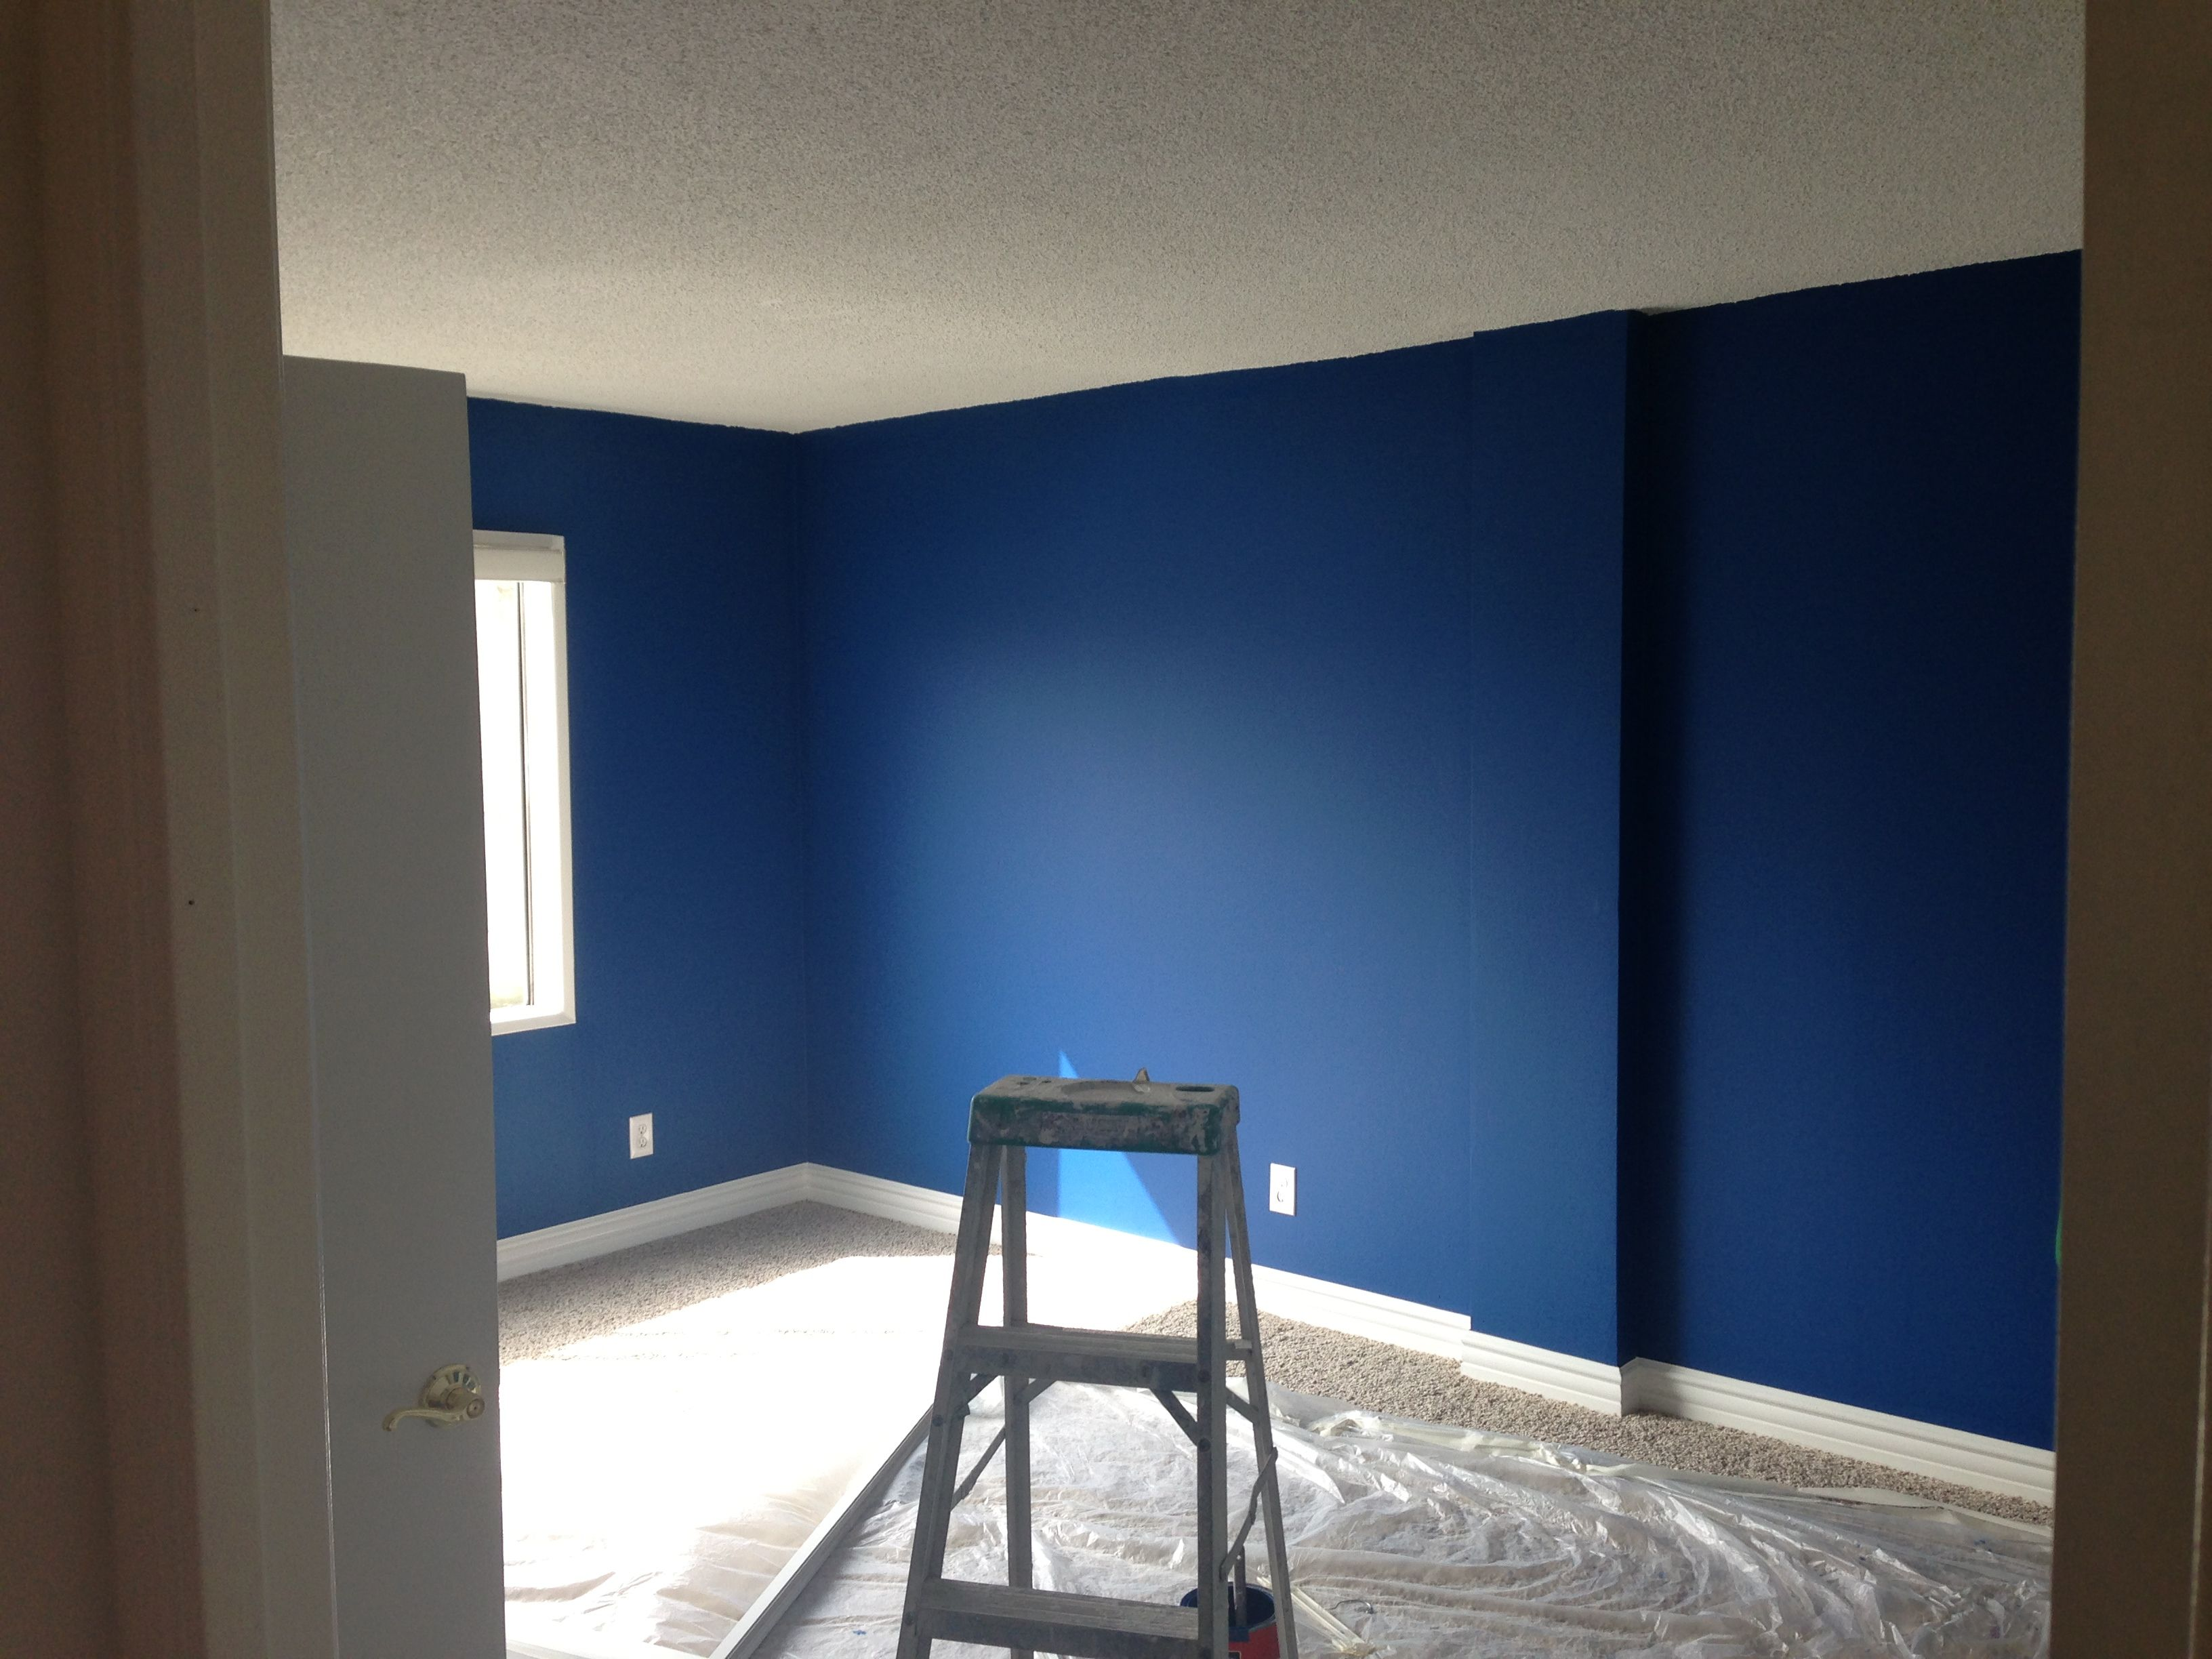 Our New Bedroom Behr Paint In Royal Breeze It Dries